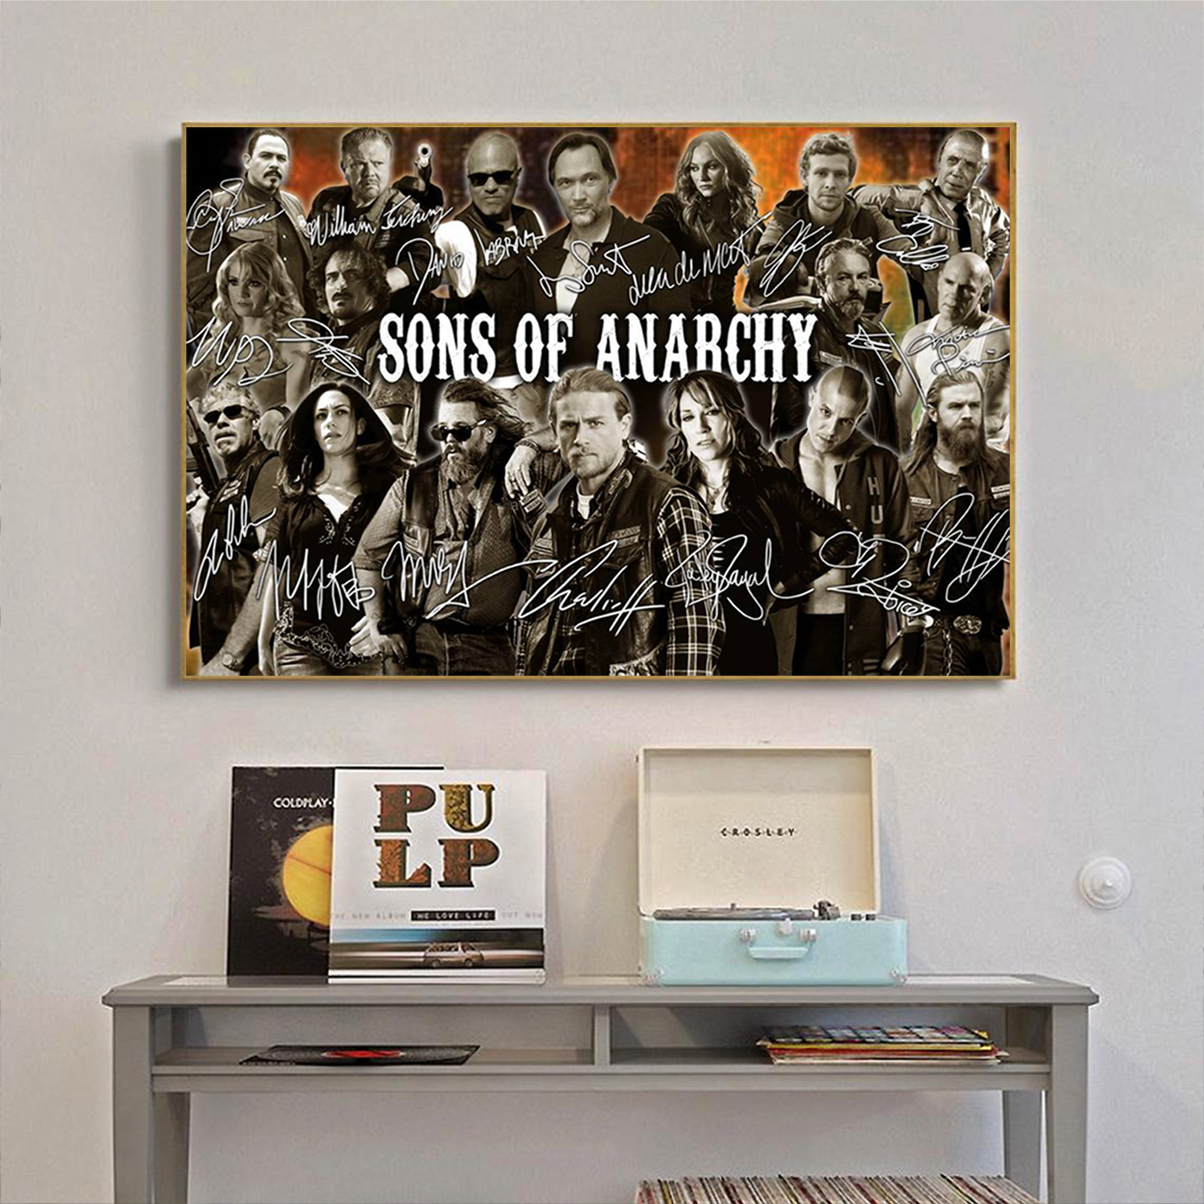 Sons of anarchy signature poster A3